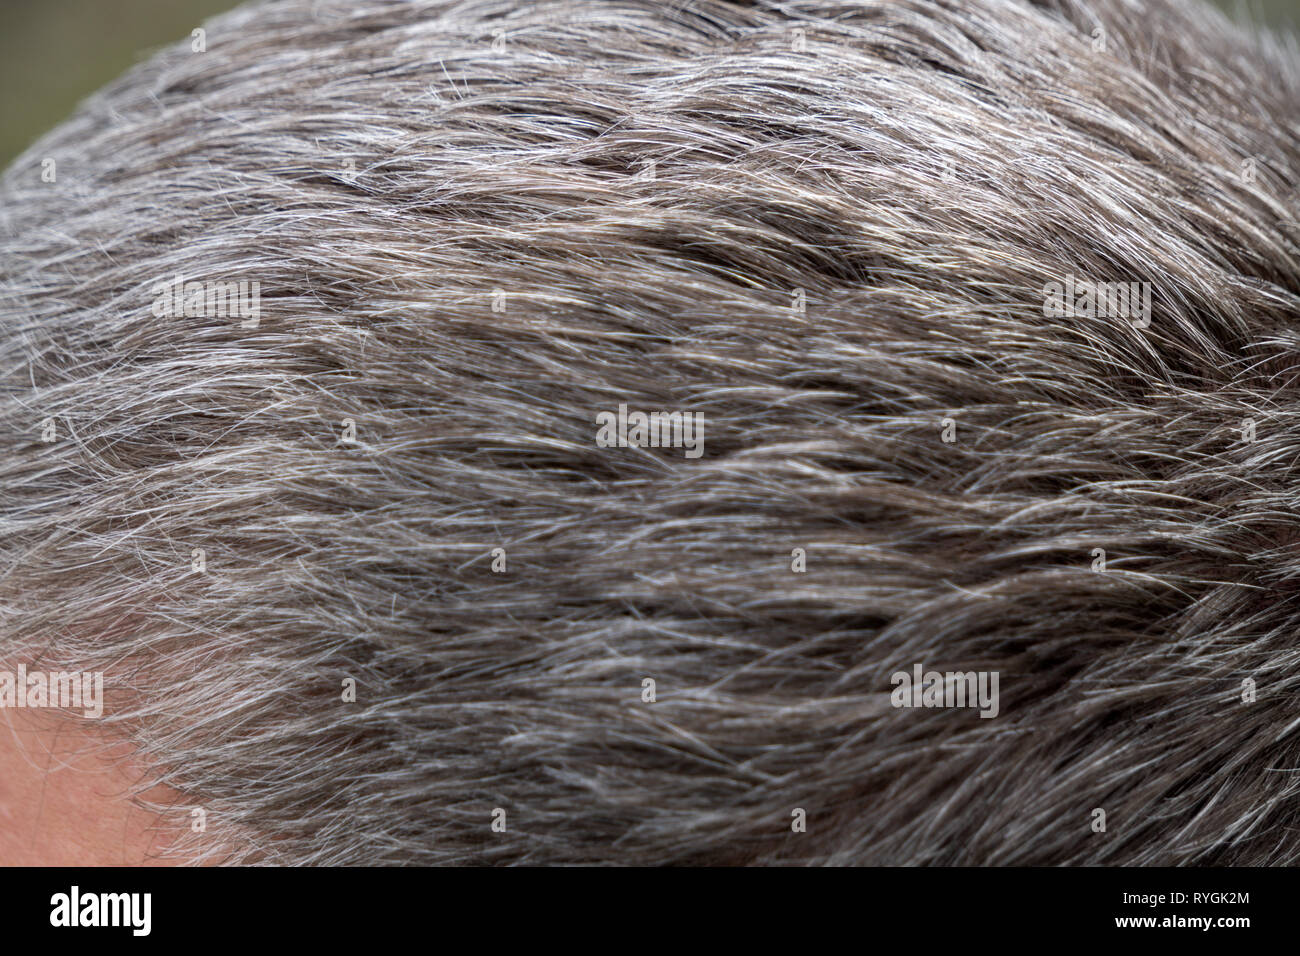 Senior man and hair loss issue casual smile - Stock Image